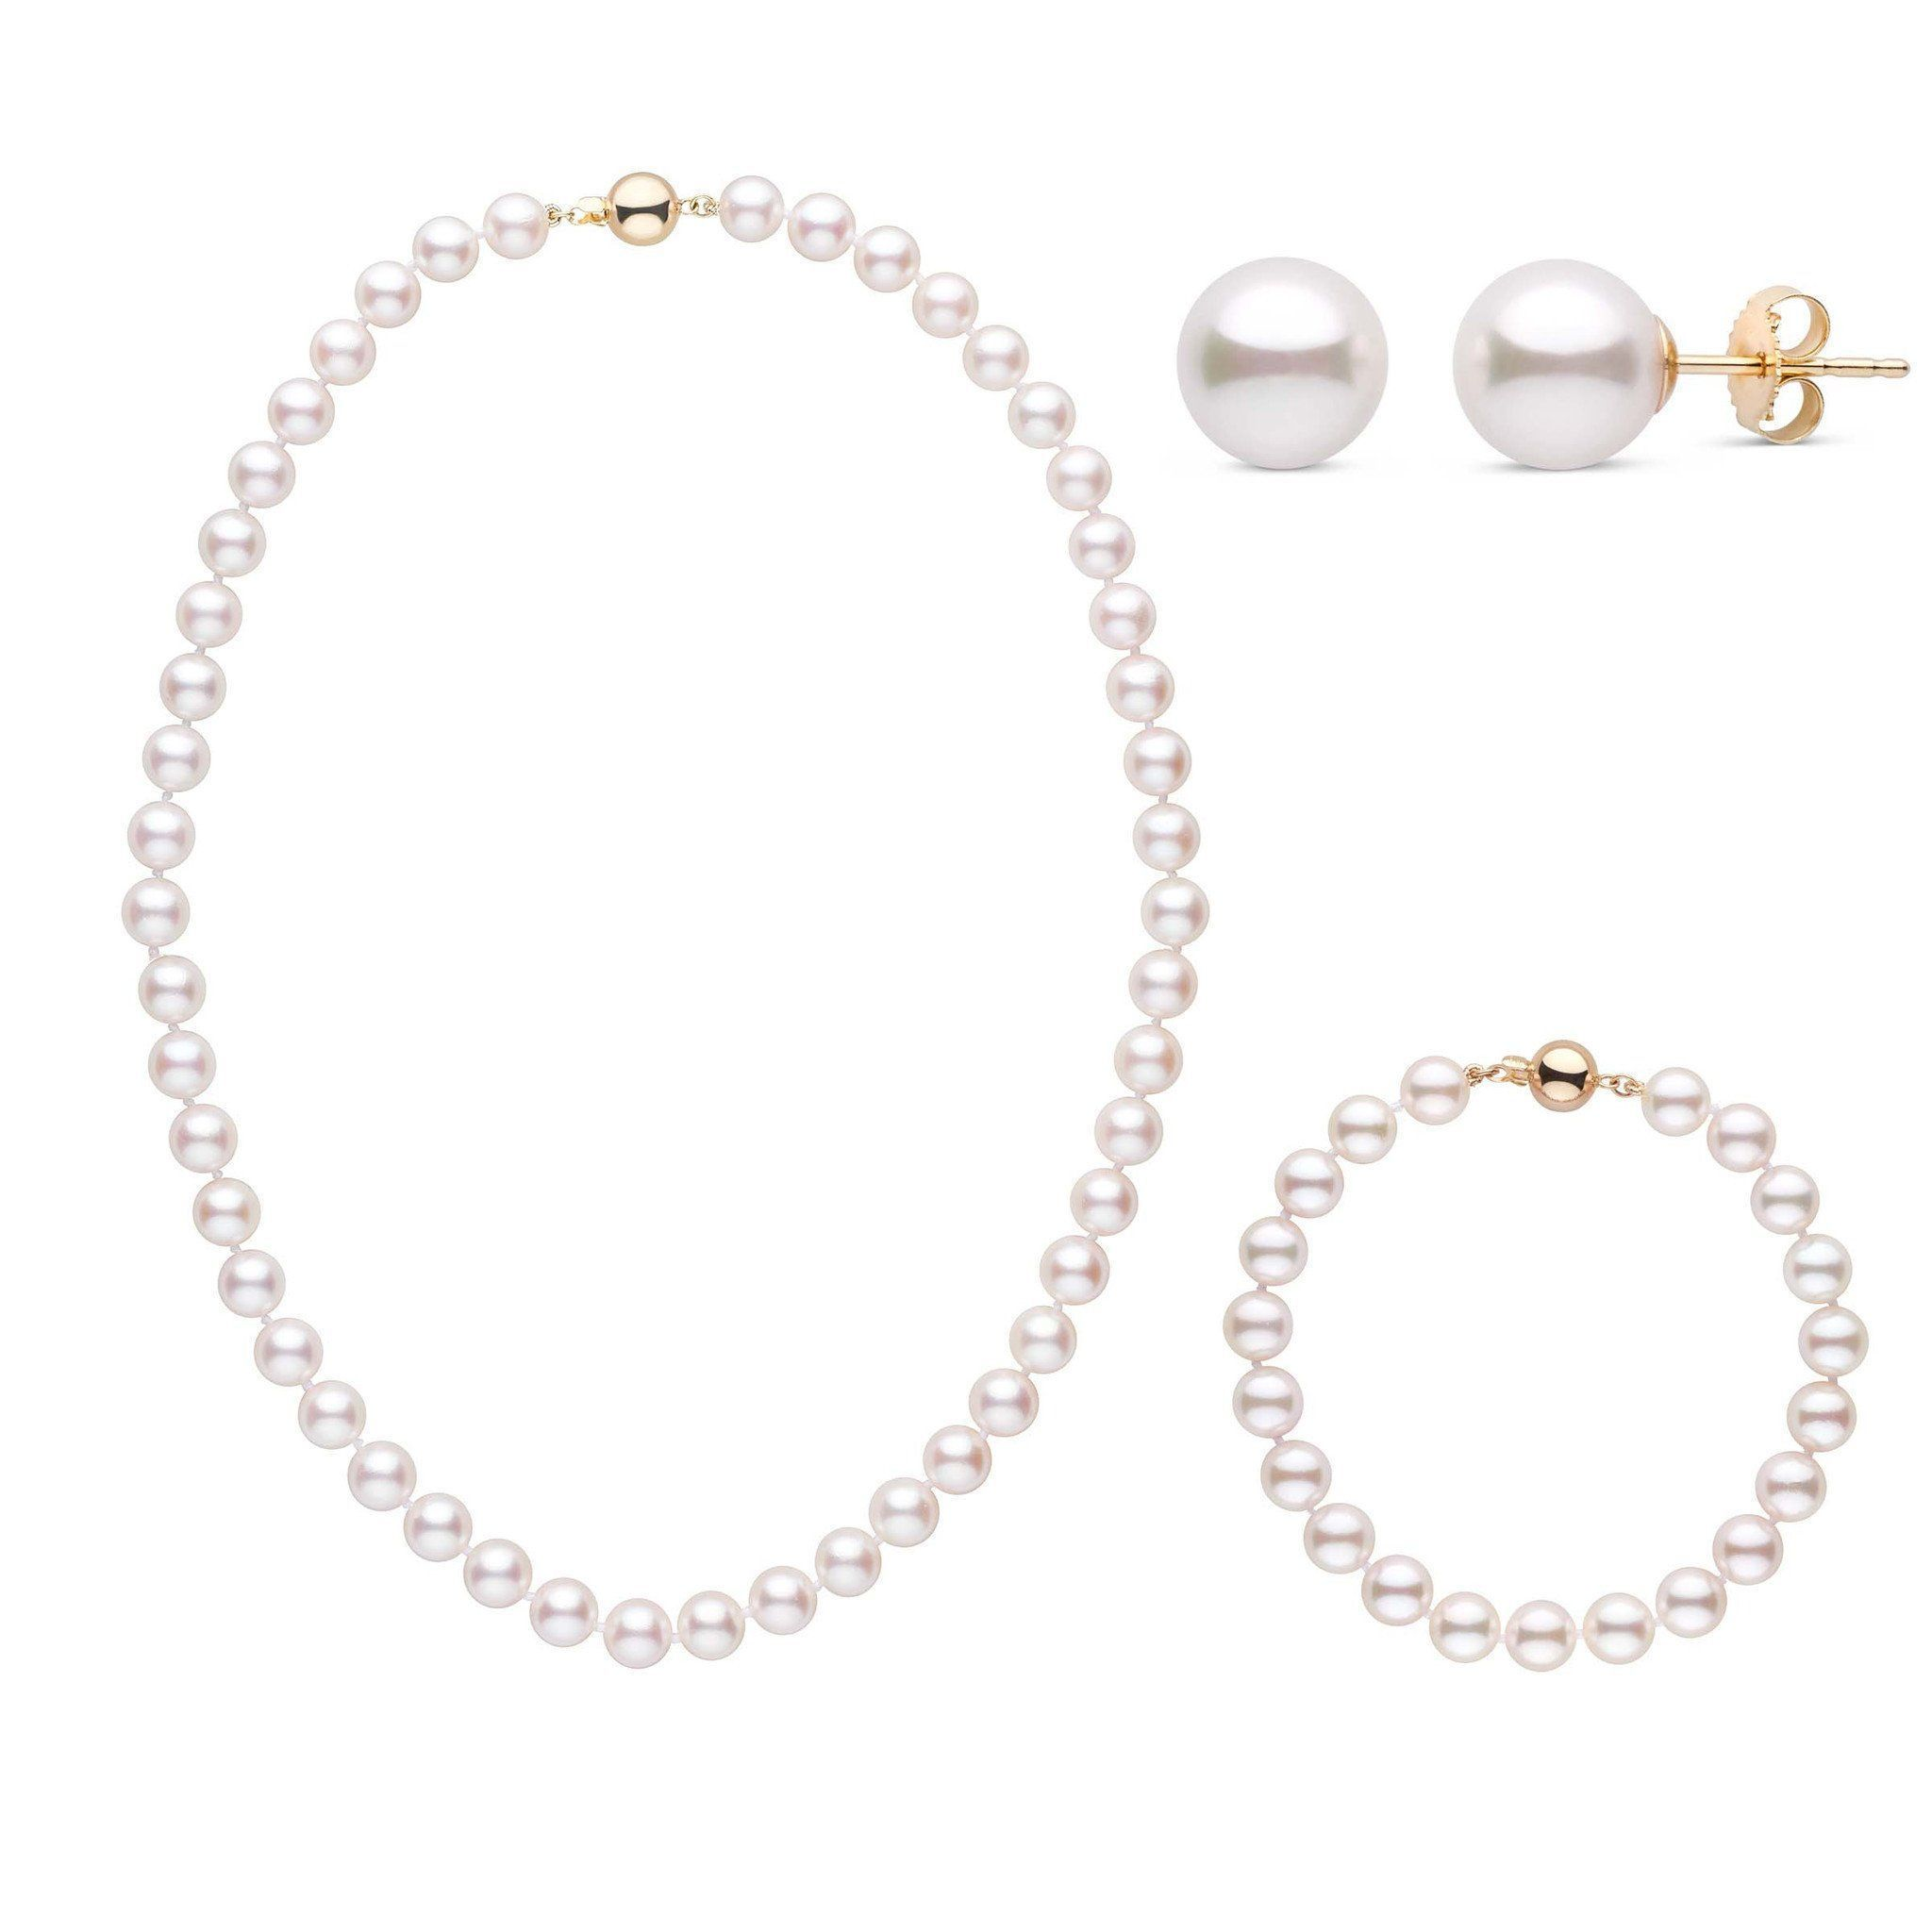 16 Inch 3 Piece Set of 7.5-8.0 mm AA+ White Akoya Pearls